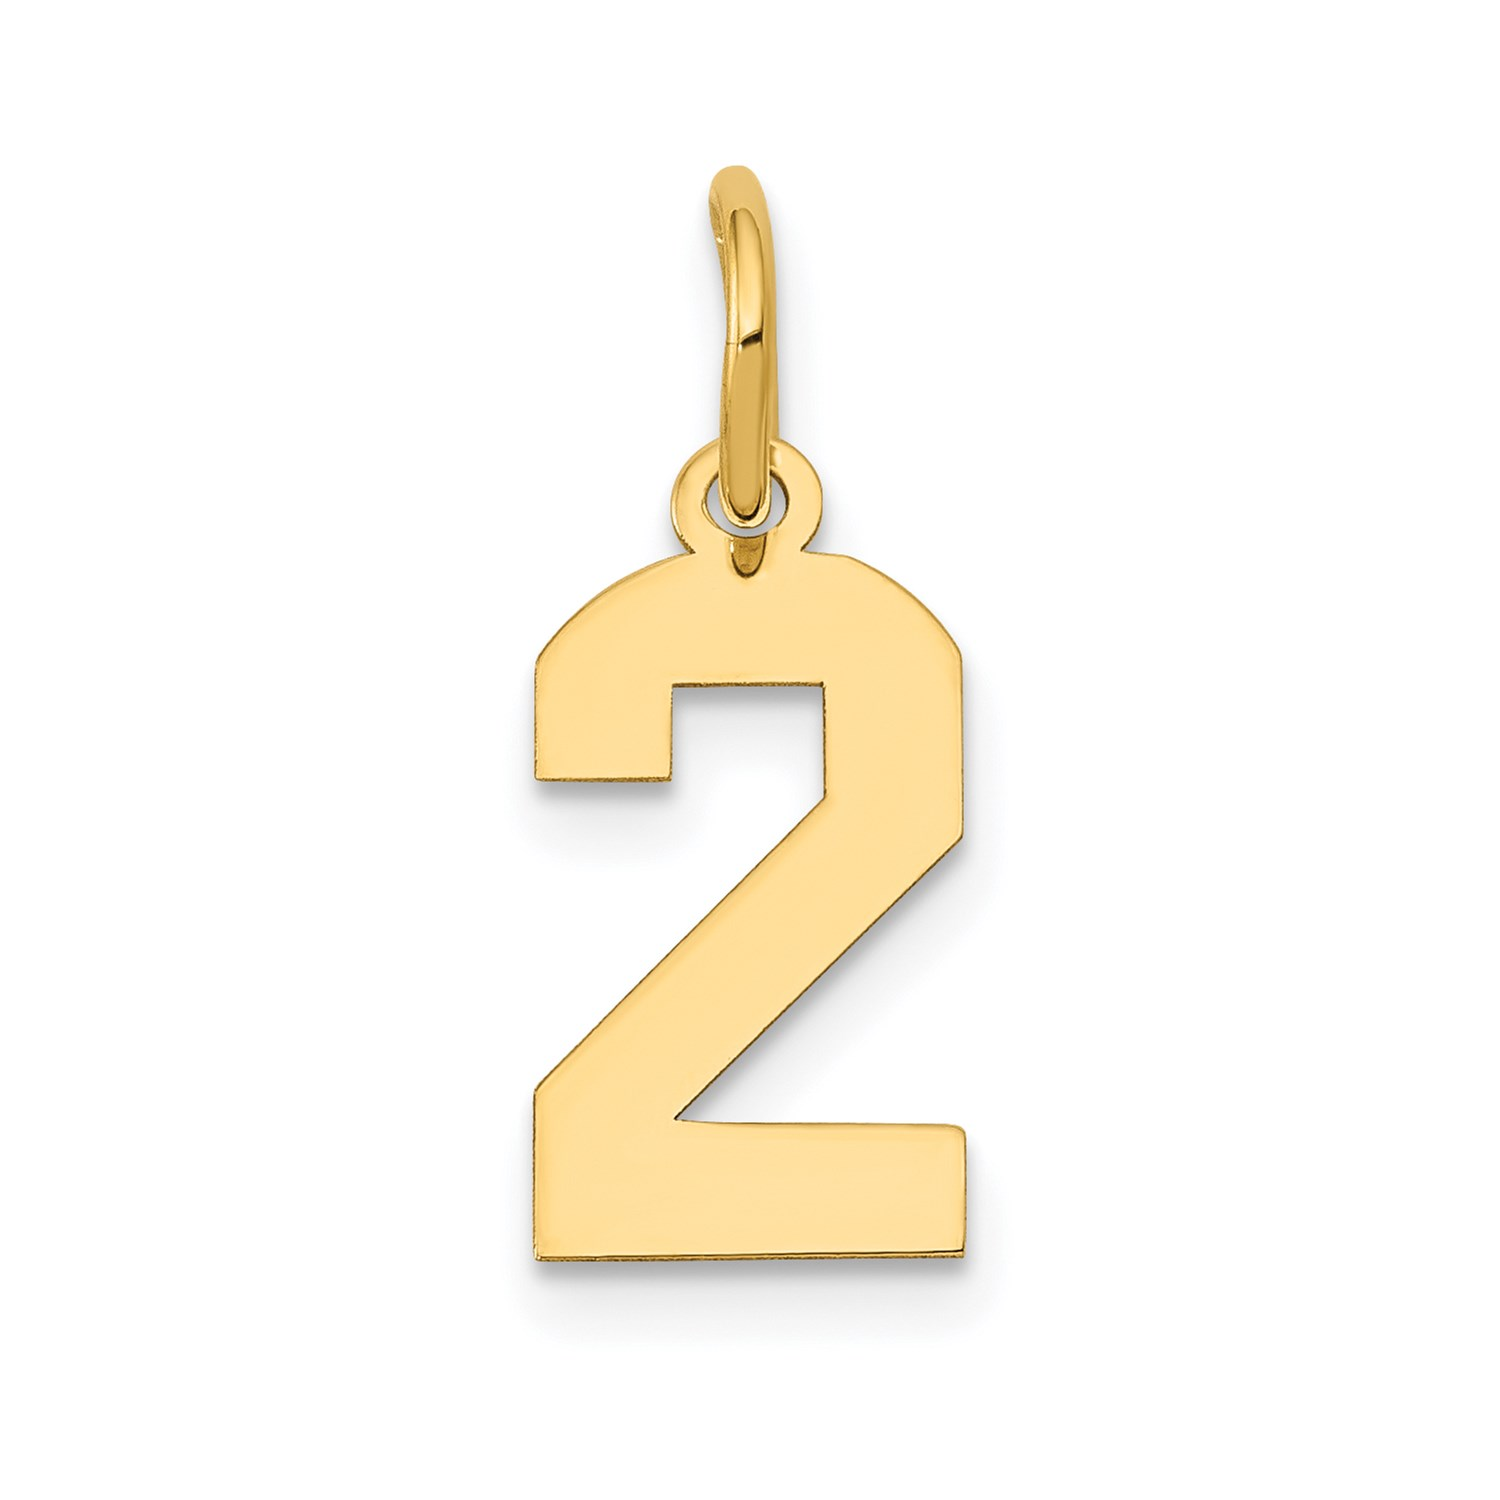 14k Yellow gold Small Polished Number 2 Charm Pendant. (0.7IN long)